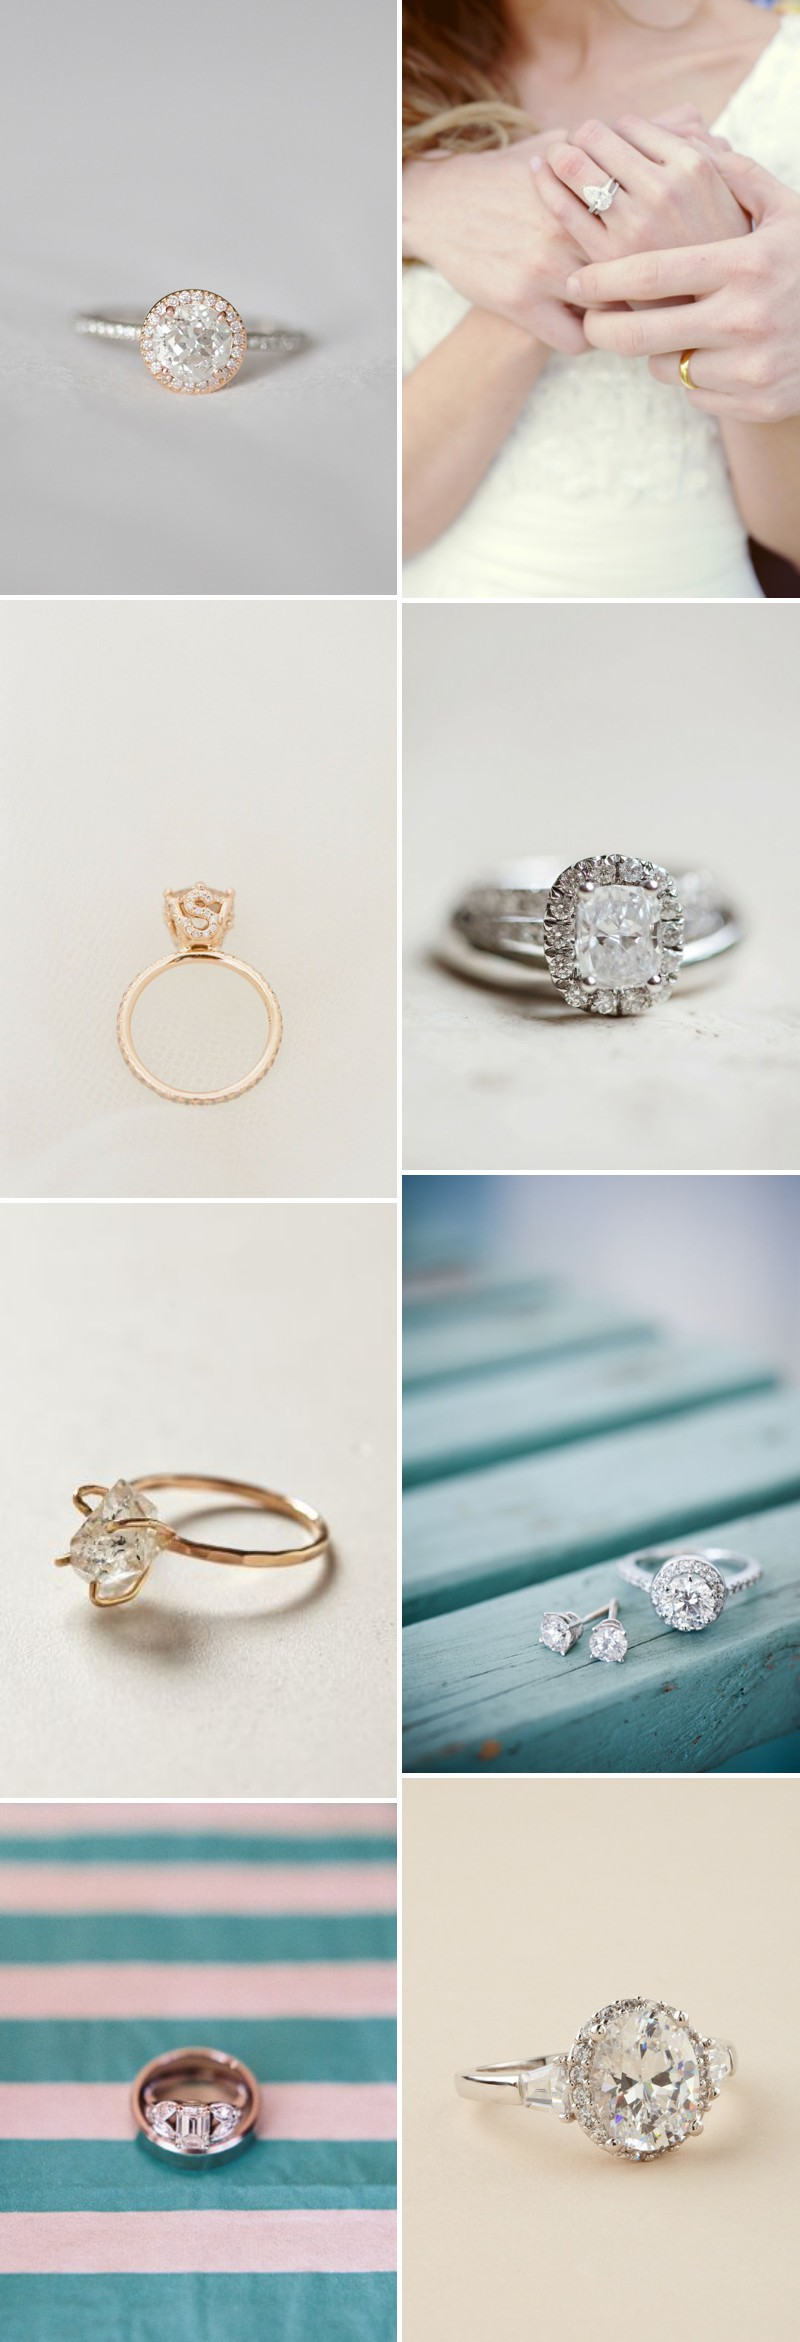 A Beautiful Engagement Ring Discussion And Inspiration Post With Diamonds And Antique Rings. 0001 What Shape Are You?